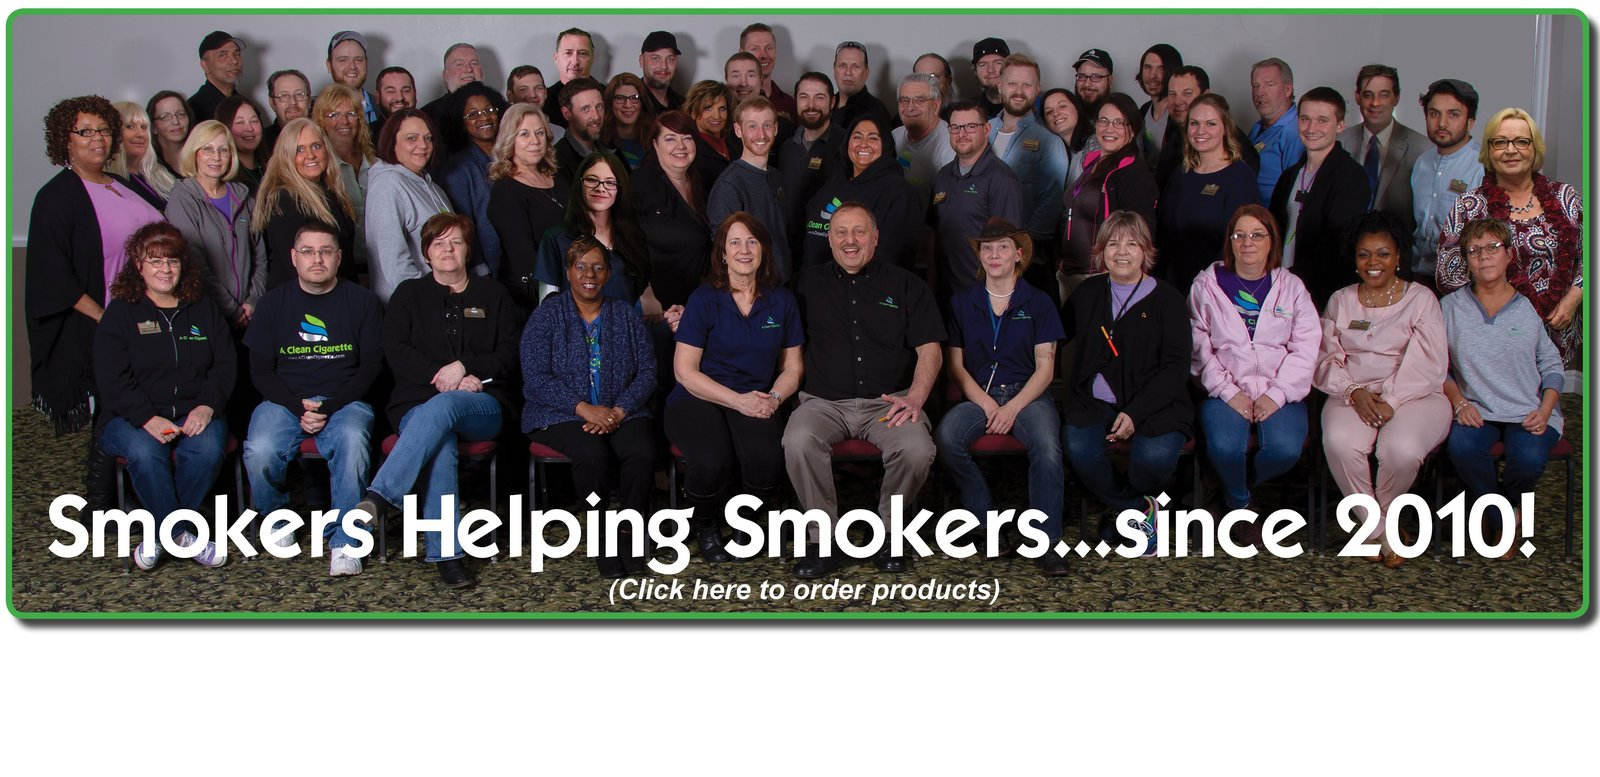 Smokers Helping Smokers...since 2010!